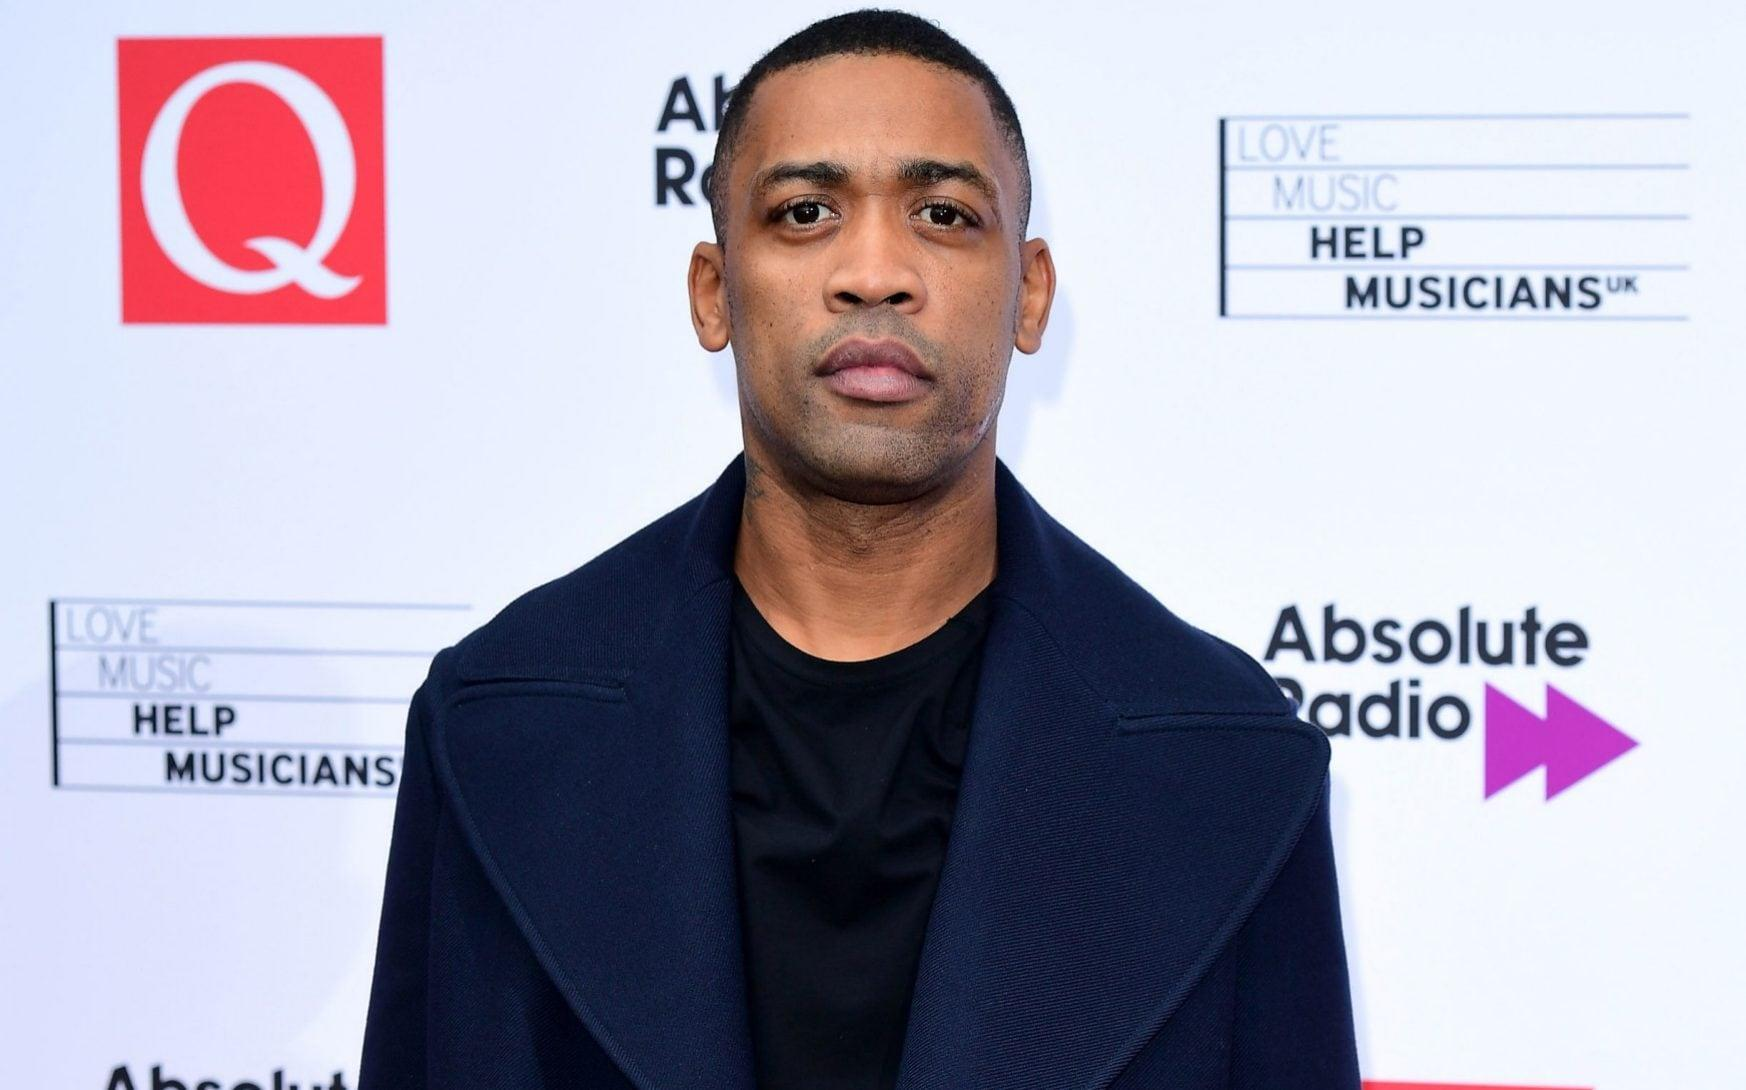 Wiley permanently suspended by Twitter over anti-Semitism